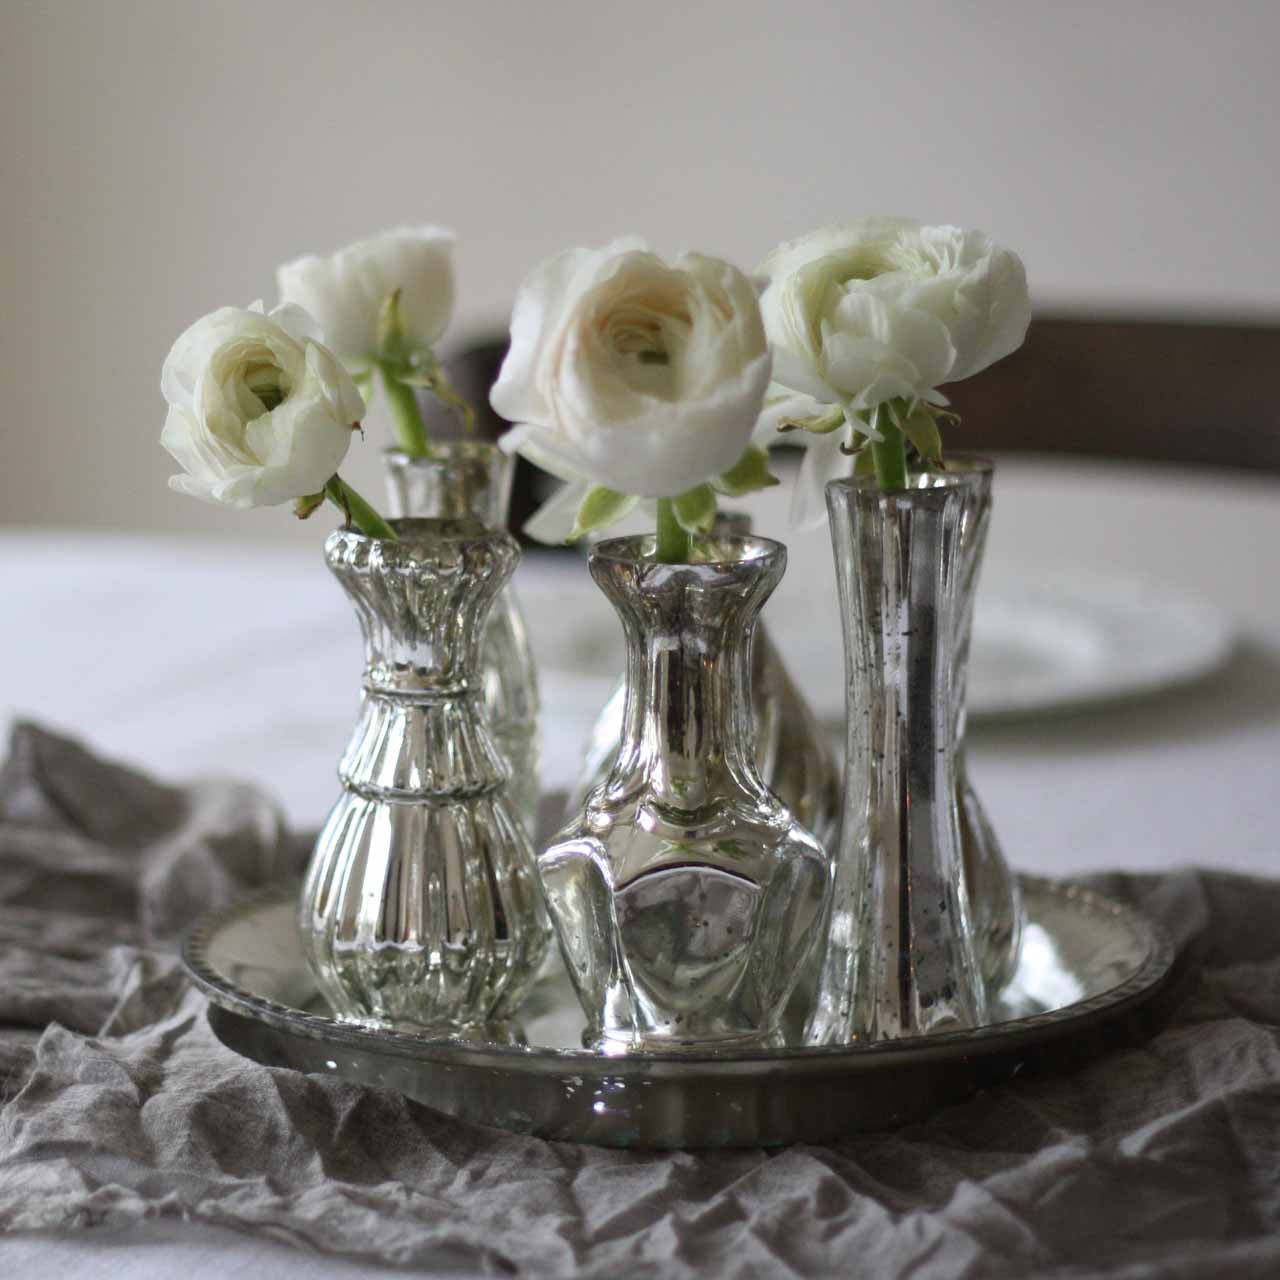 Real Fairytale Weddings Silver Spring Md: Set Of 6 Mercury Silver Vases On Tray Wedding Centrepiece